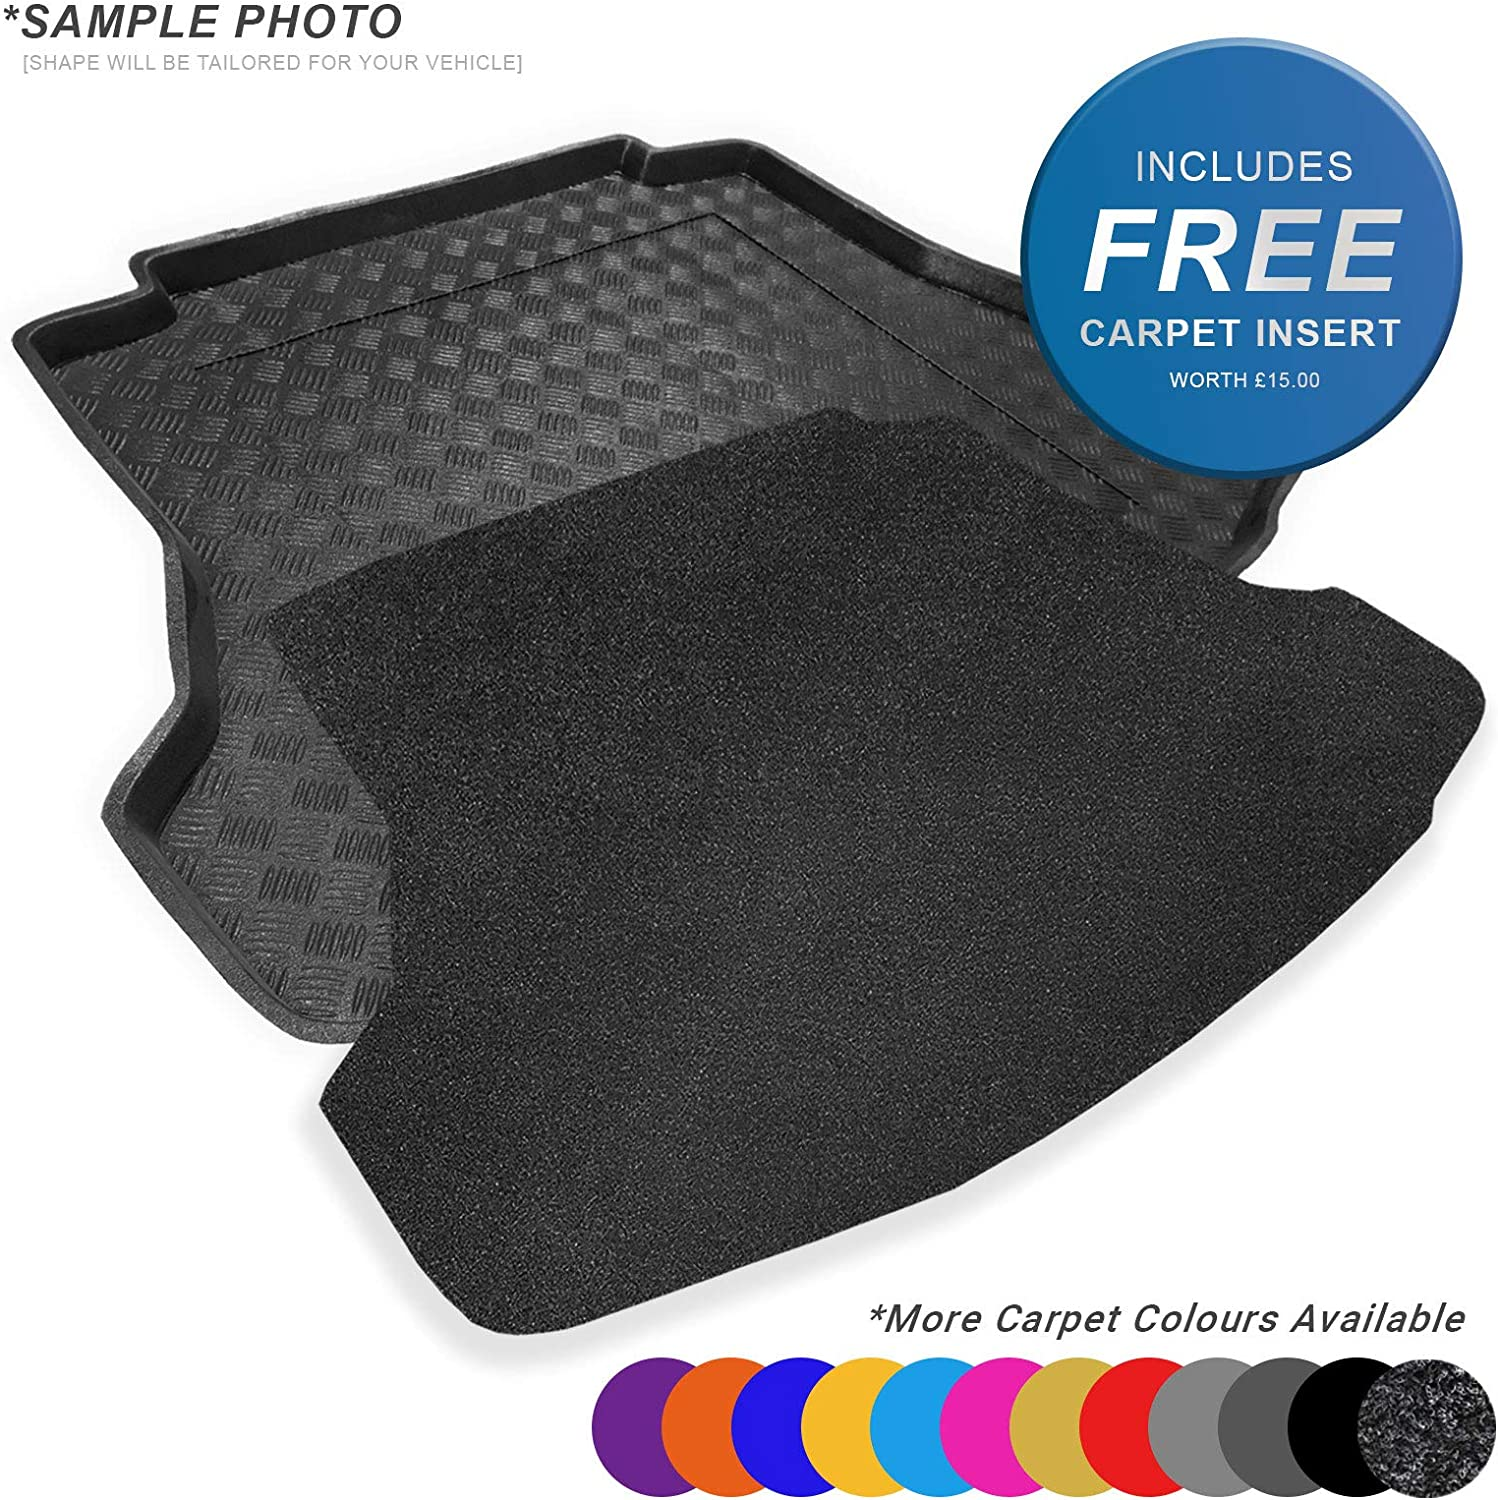 Mat FREE Charcoal Velour Carpet Insert Tray Fully Tailored PVC Boot Liner